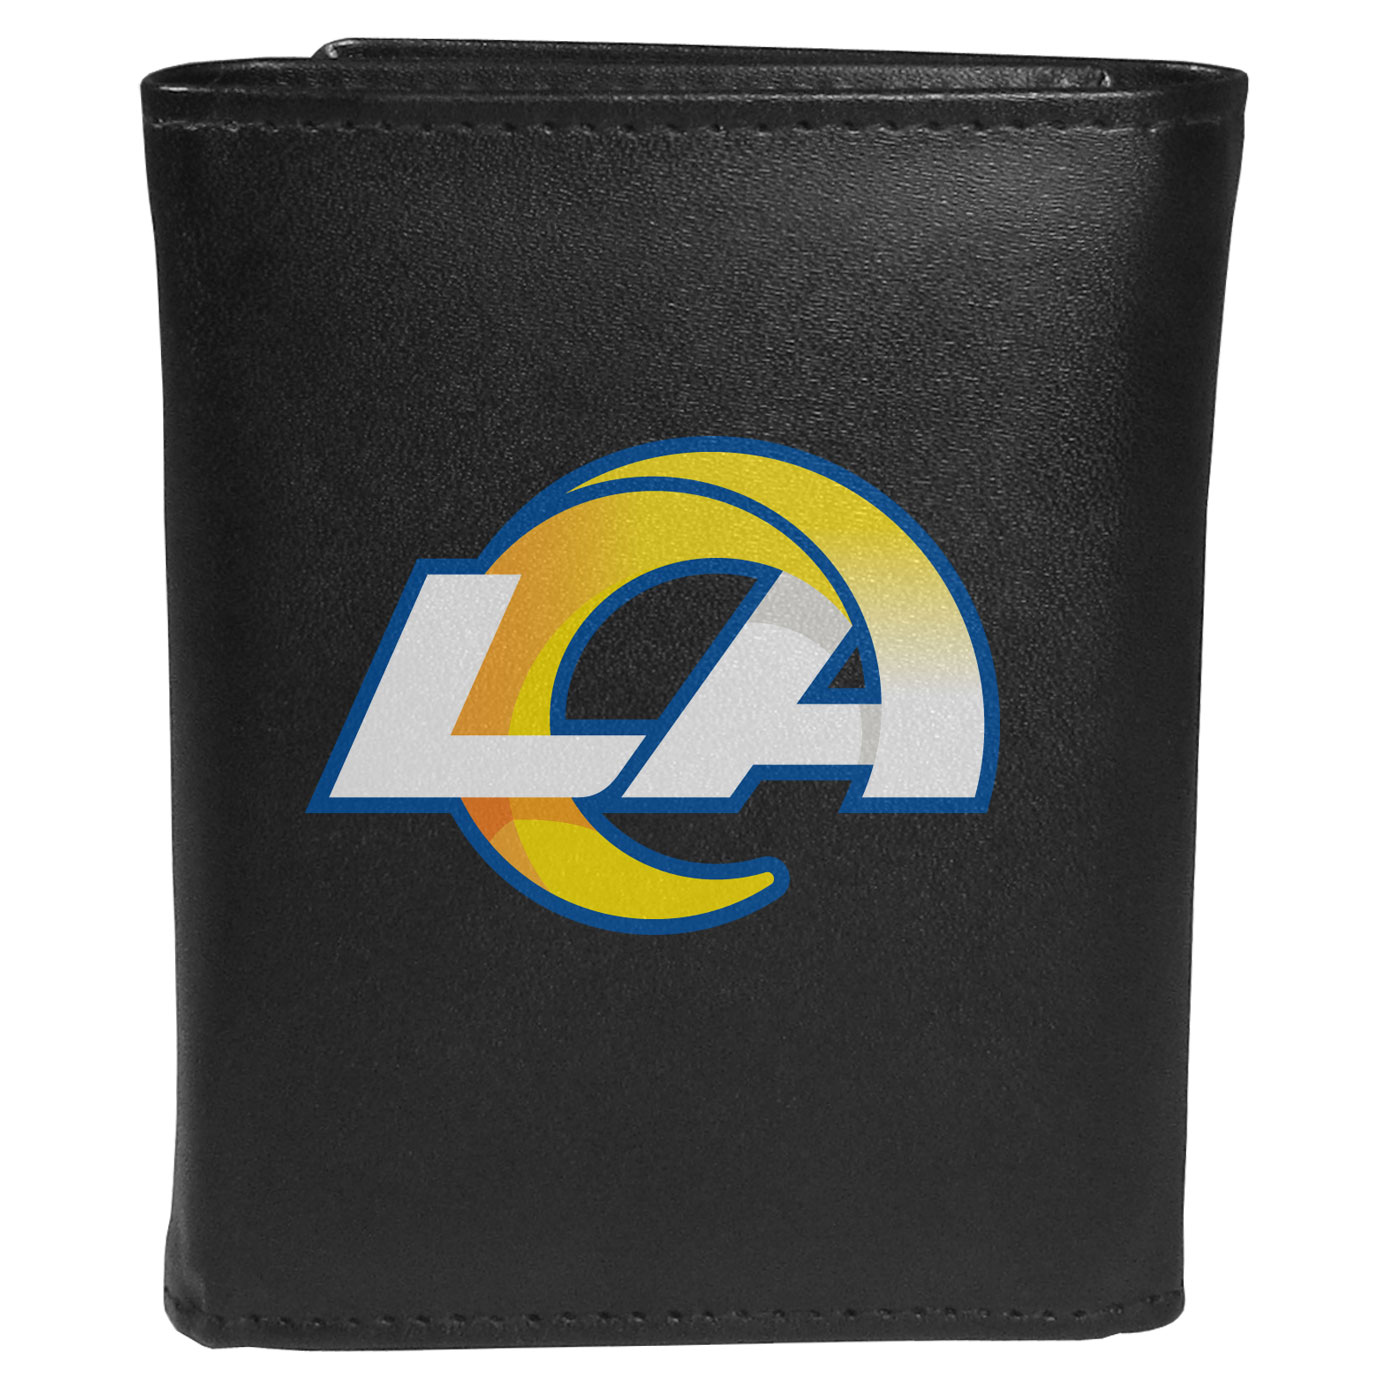 Los Angeles Rams Leather Tri-fold Wallet, Large Logo - Our classic fine leather tri-fold wallet is meticulously crafted with genuine leather that will age beautifully so you will have a quality wallet for years to come. This is fan apparel at its finest. The wallet is packed with organizational  features; lots of credit card slots, large billfold pocket, and a window ID slot. The front of the wallet features an extra large Los Angeles Rams printed logo.